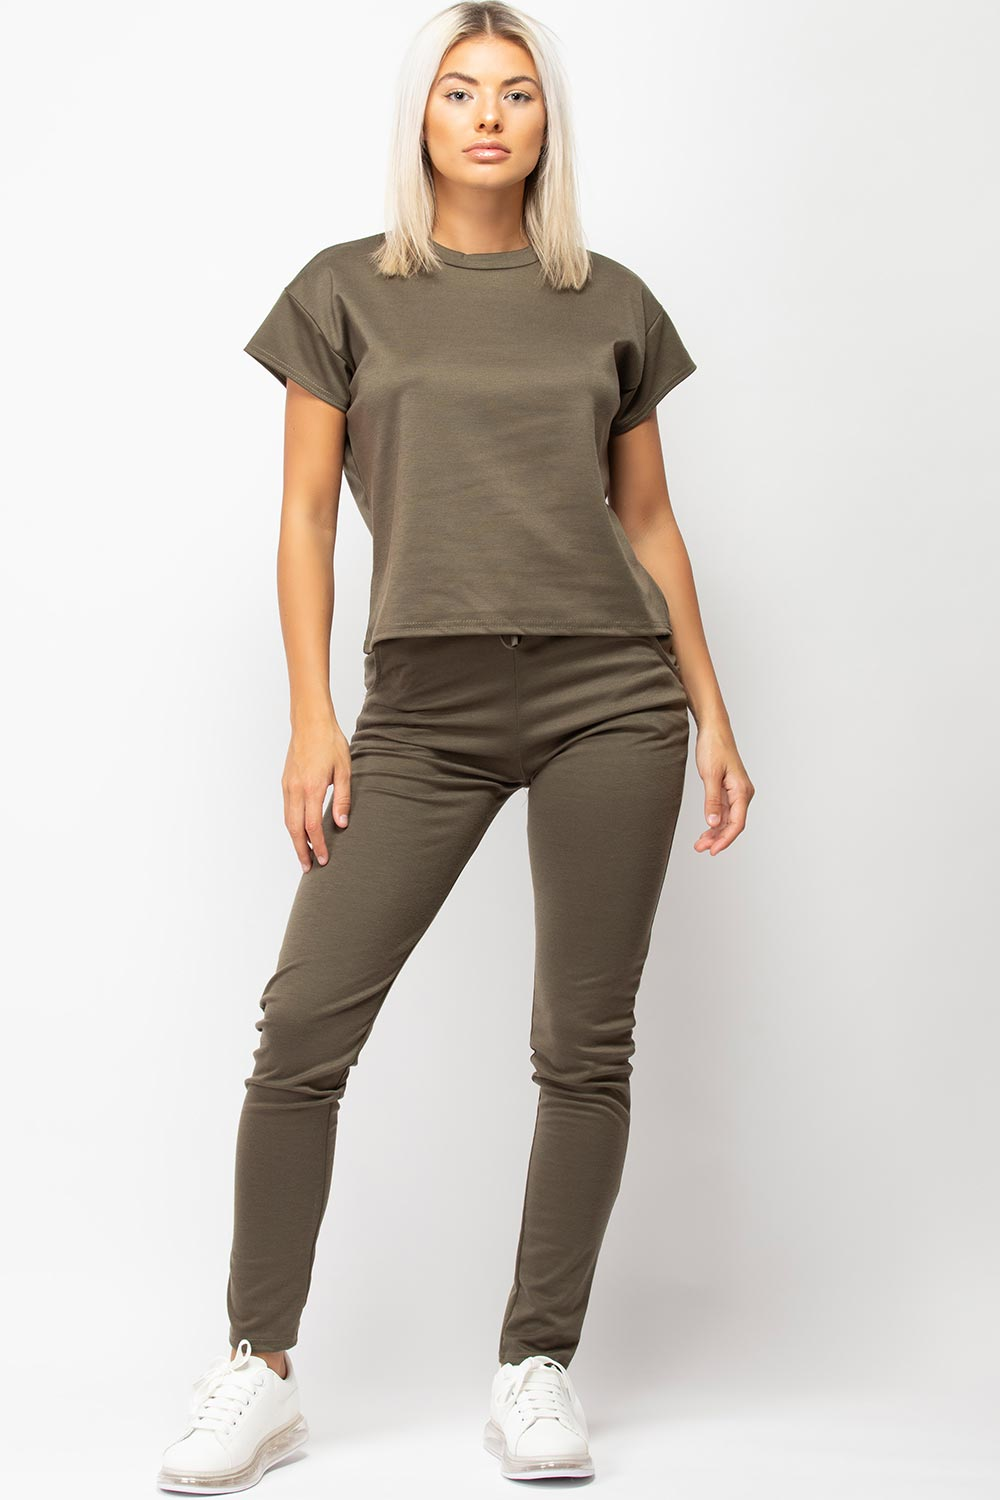 womens khaki loungewear set